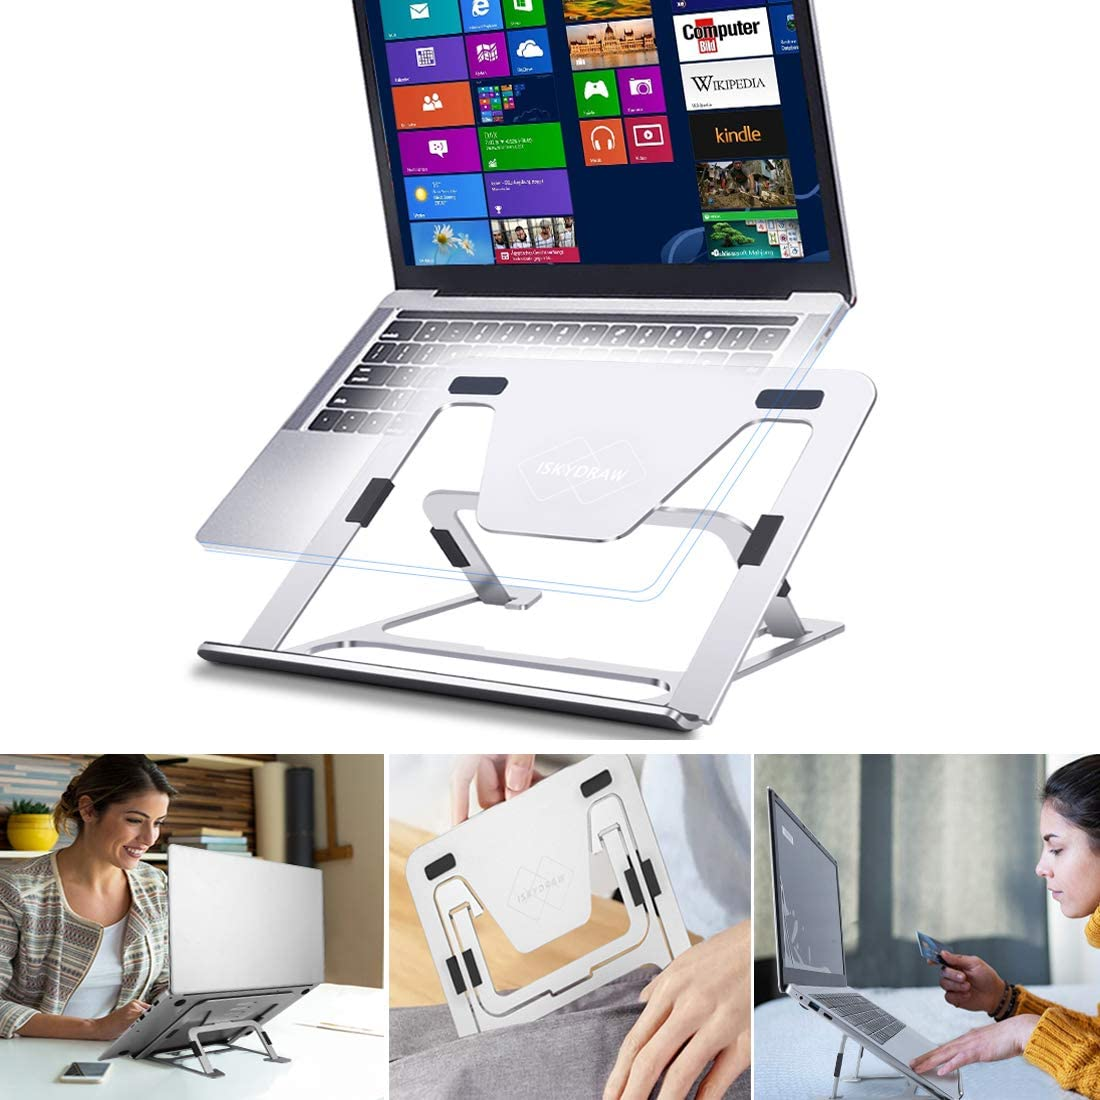 Laptop Stand, Upgraded Adjustable Computer Notebook Stand Laptop Riser for Desk, Ergonomic Aluminum Foldable Portable Desktop Tablet Holder, Compatible with MacBook, iPad, Dell, HP, Lenovo (11-17'')